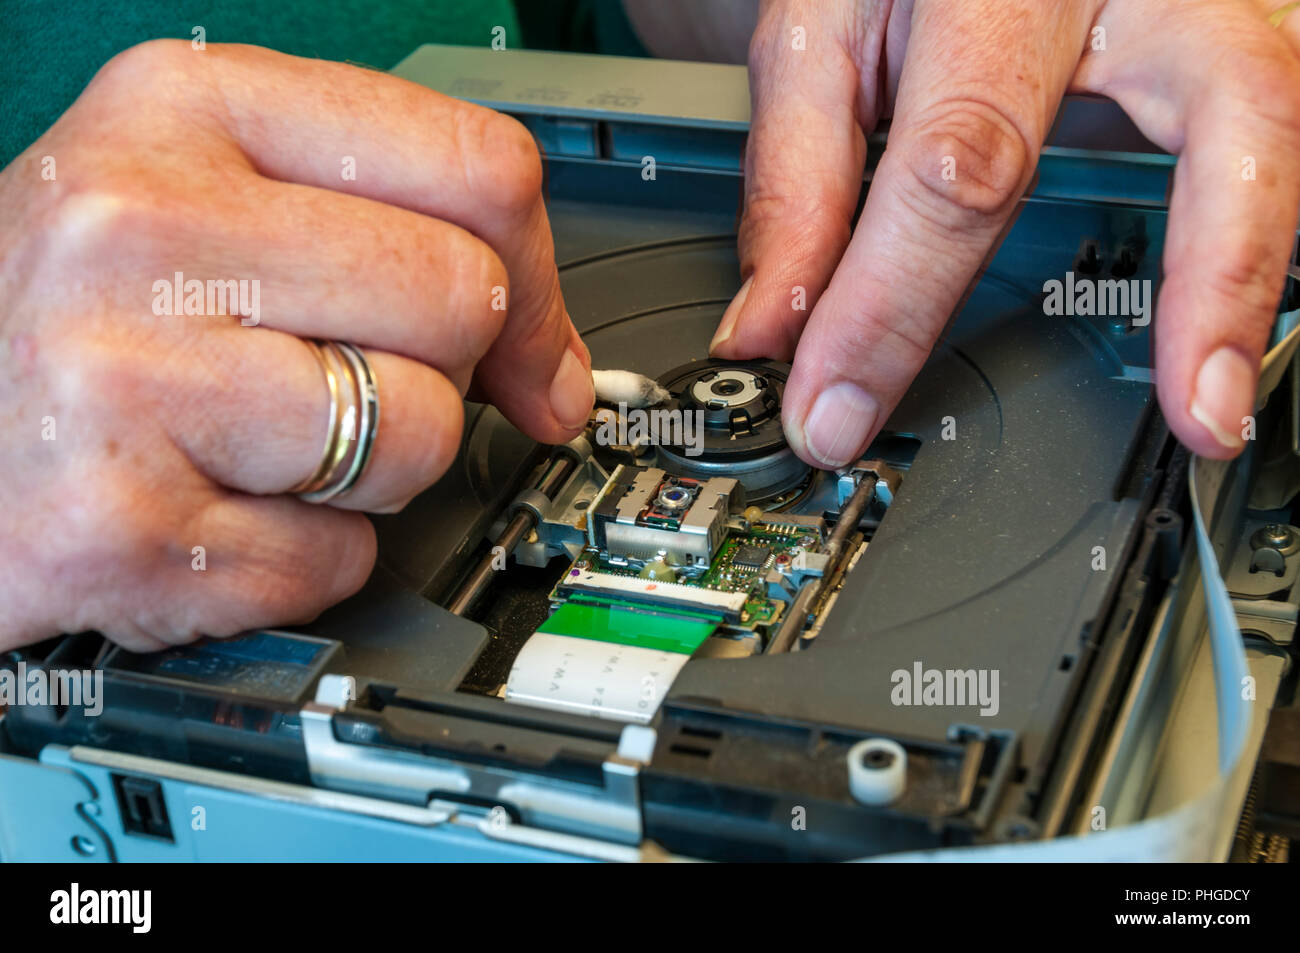 Technician cleaning spindle of a DVD recorder with a cotton bud. - Stock Image